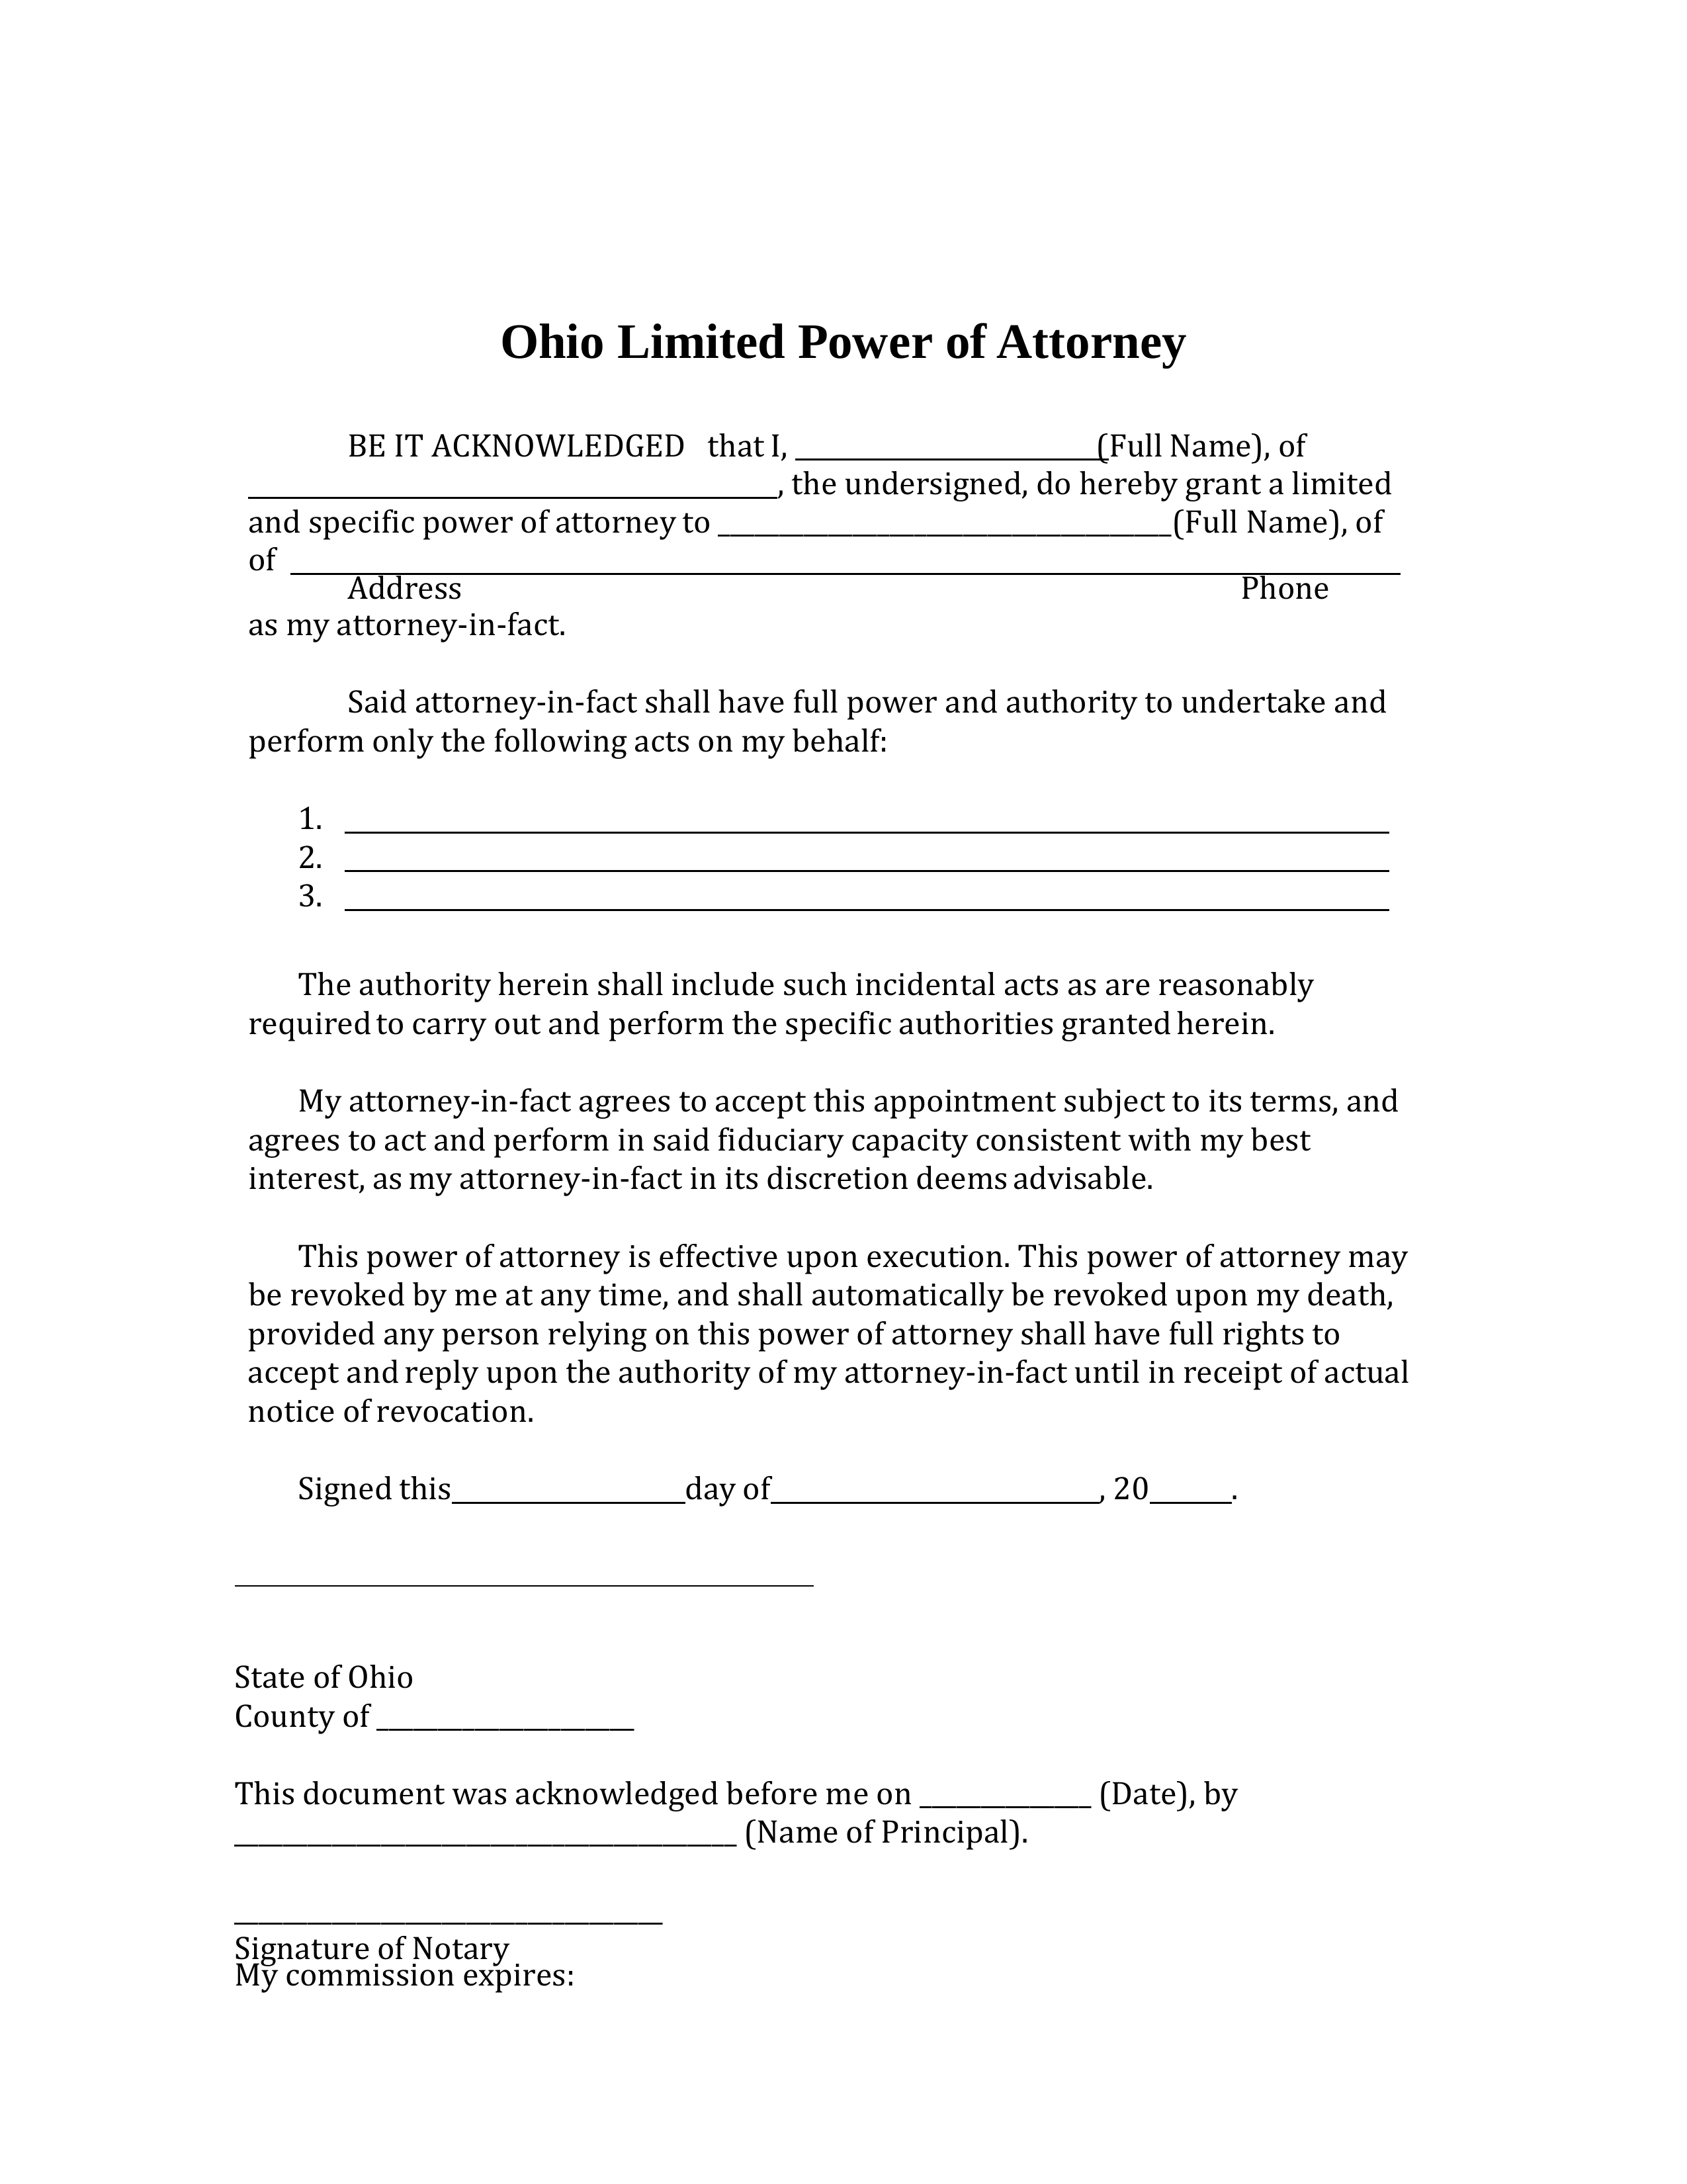 power of attorney form ohio  Free Ohio Limited Power of Attorney Form - PDF | Word ...